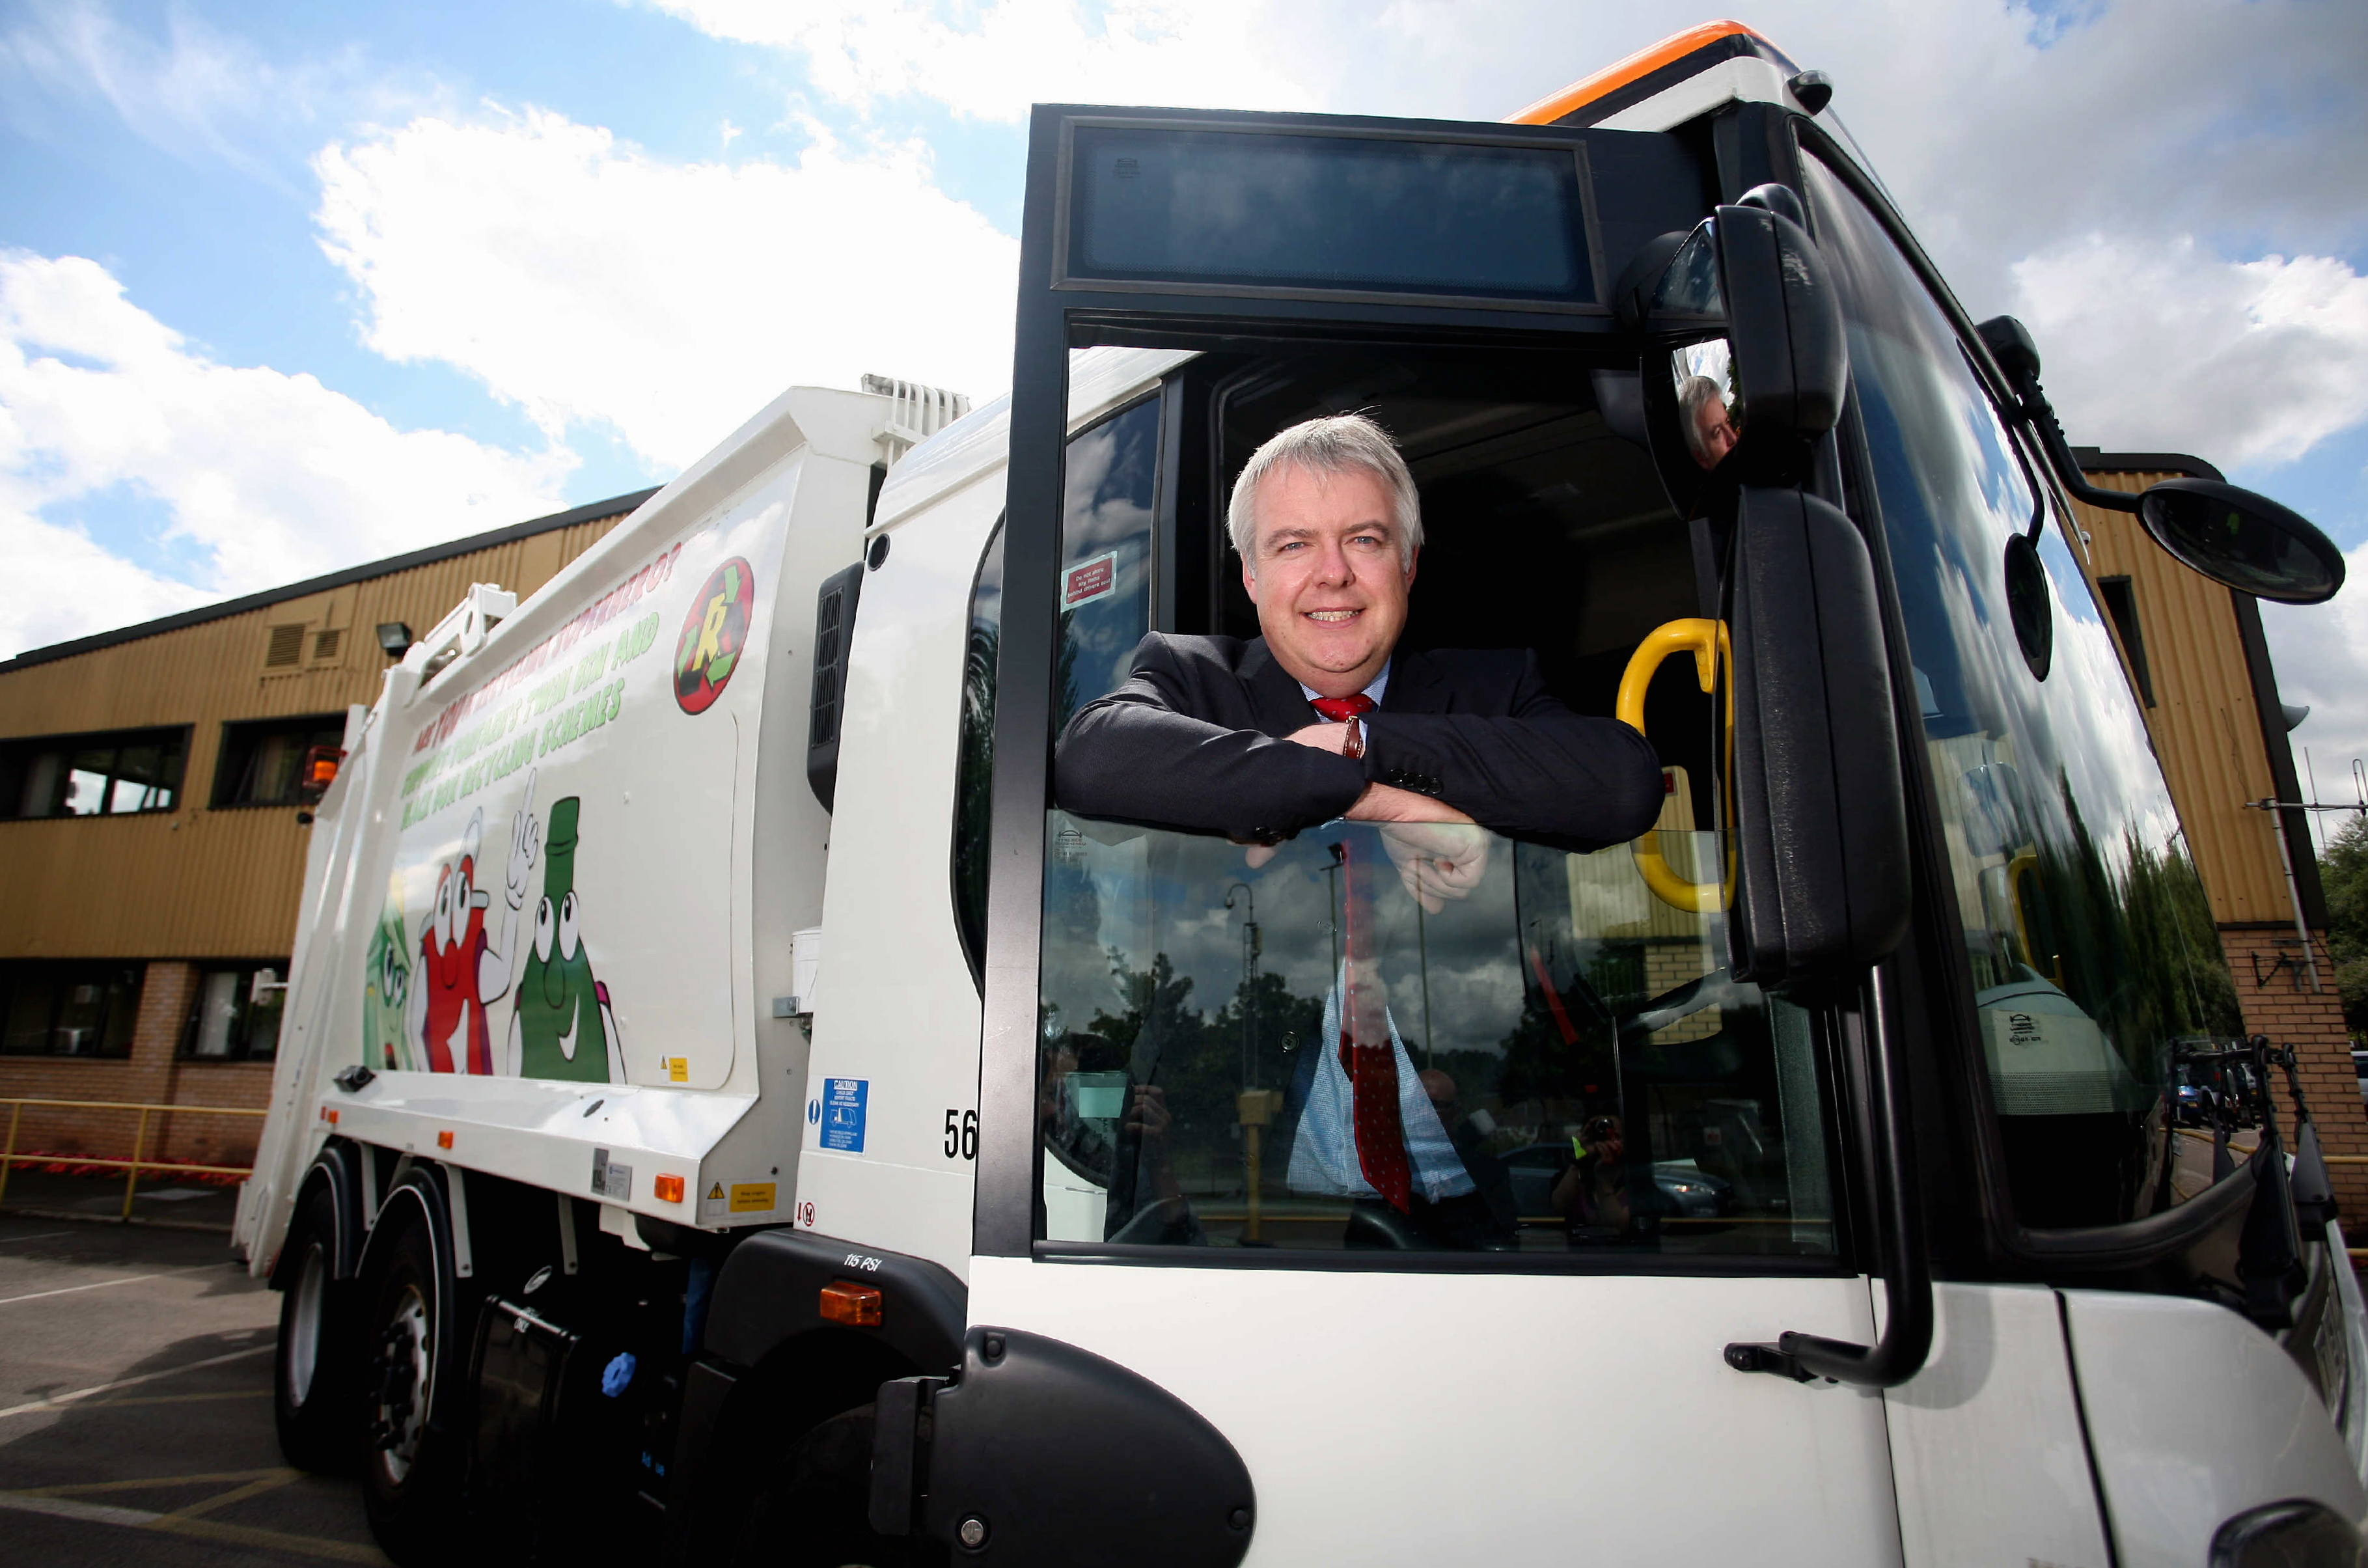 Pictured: First Minister for Wales Carwyn Jones in the cab of a refuse lorry. Thursday 22 July 2010 Re: The first minister of Wales, Carwyn Jones, is doing a tour speaking to public workers at the Neighbourhood Services department in New Inn near Pontypool where he was taken in a refuse lorry from the town's Civic Centre.